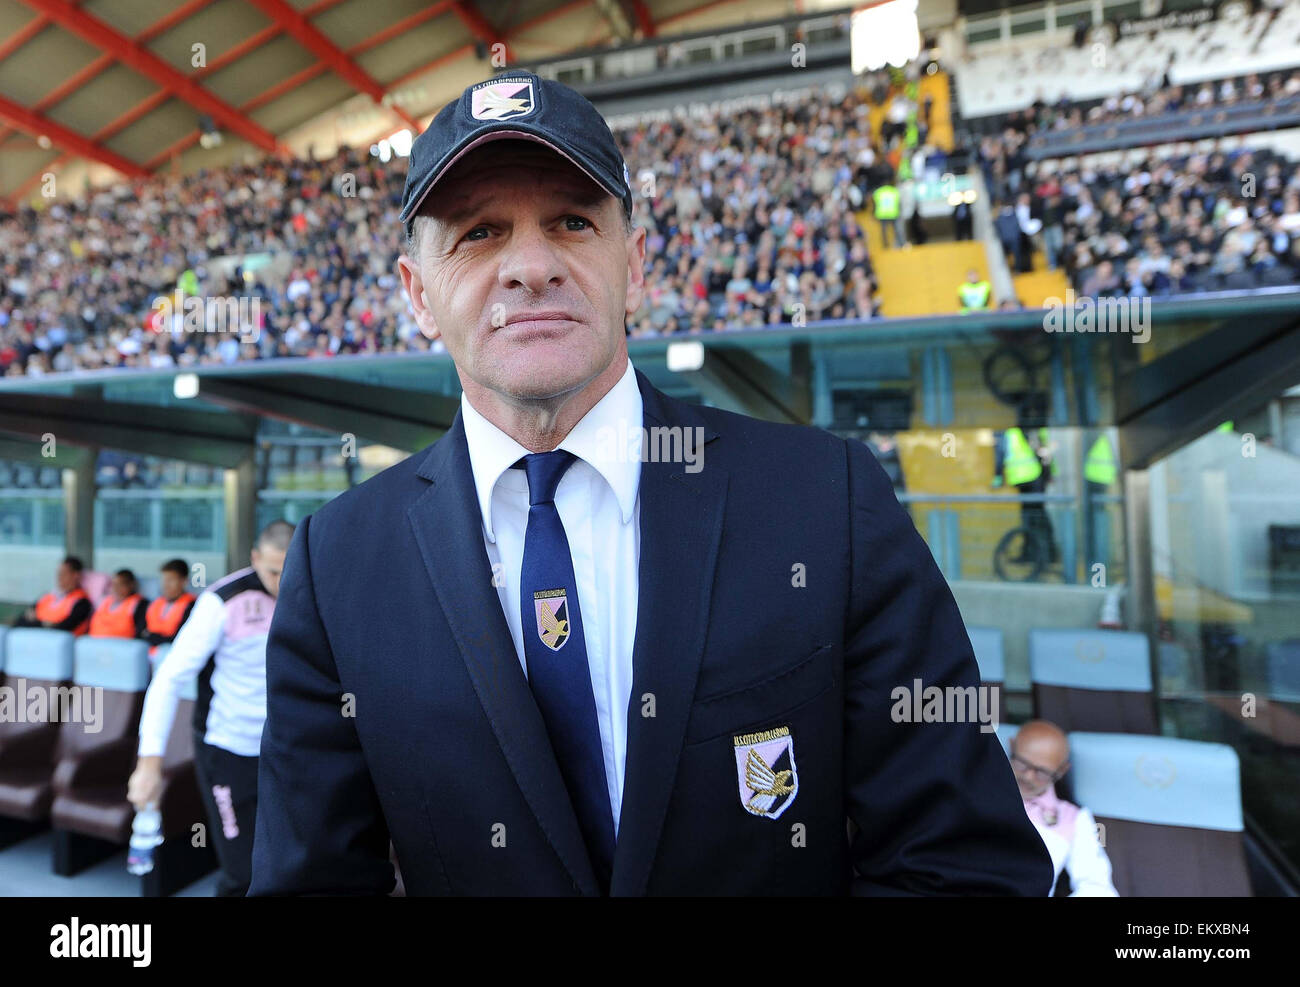 Palermo's head coach Giuseppe Iachini during the Italian Serie A football match between Udinese and Palermo - Stock Image